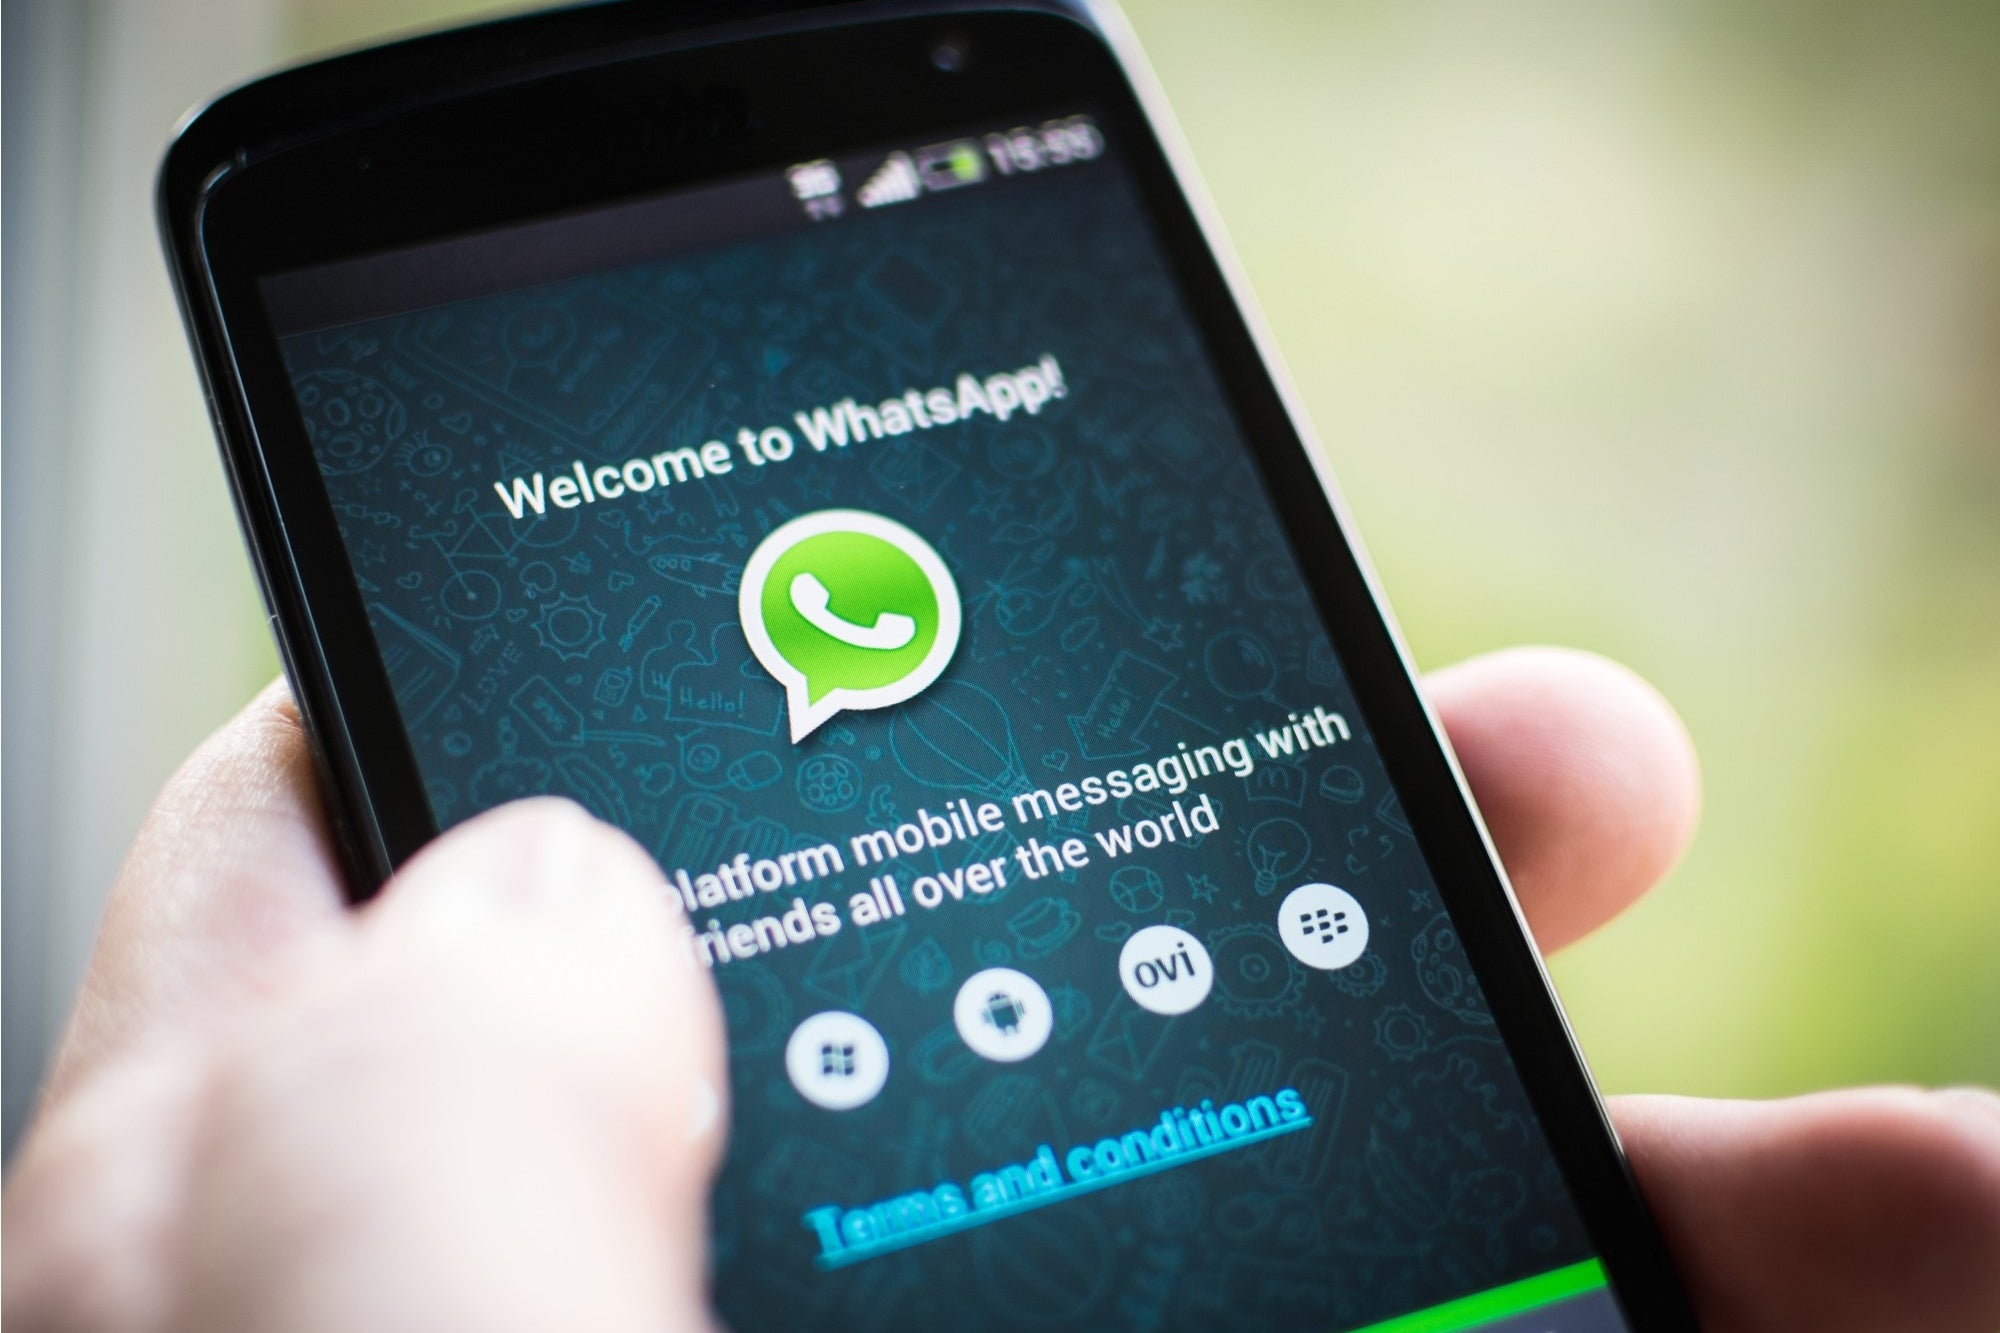 WhatsApp postpones the update of the privacy policy due to the flight of users